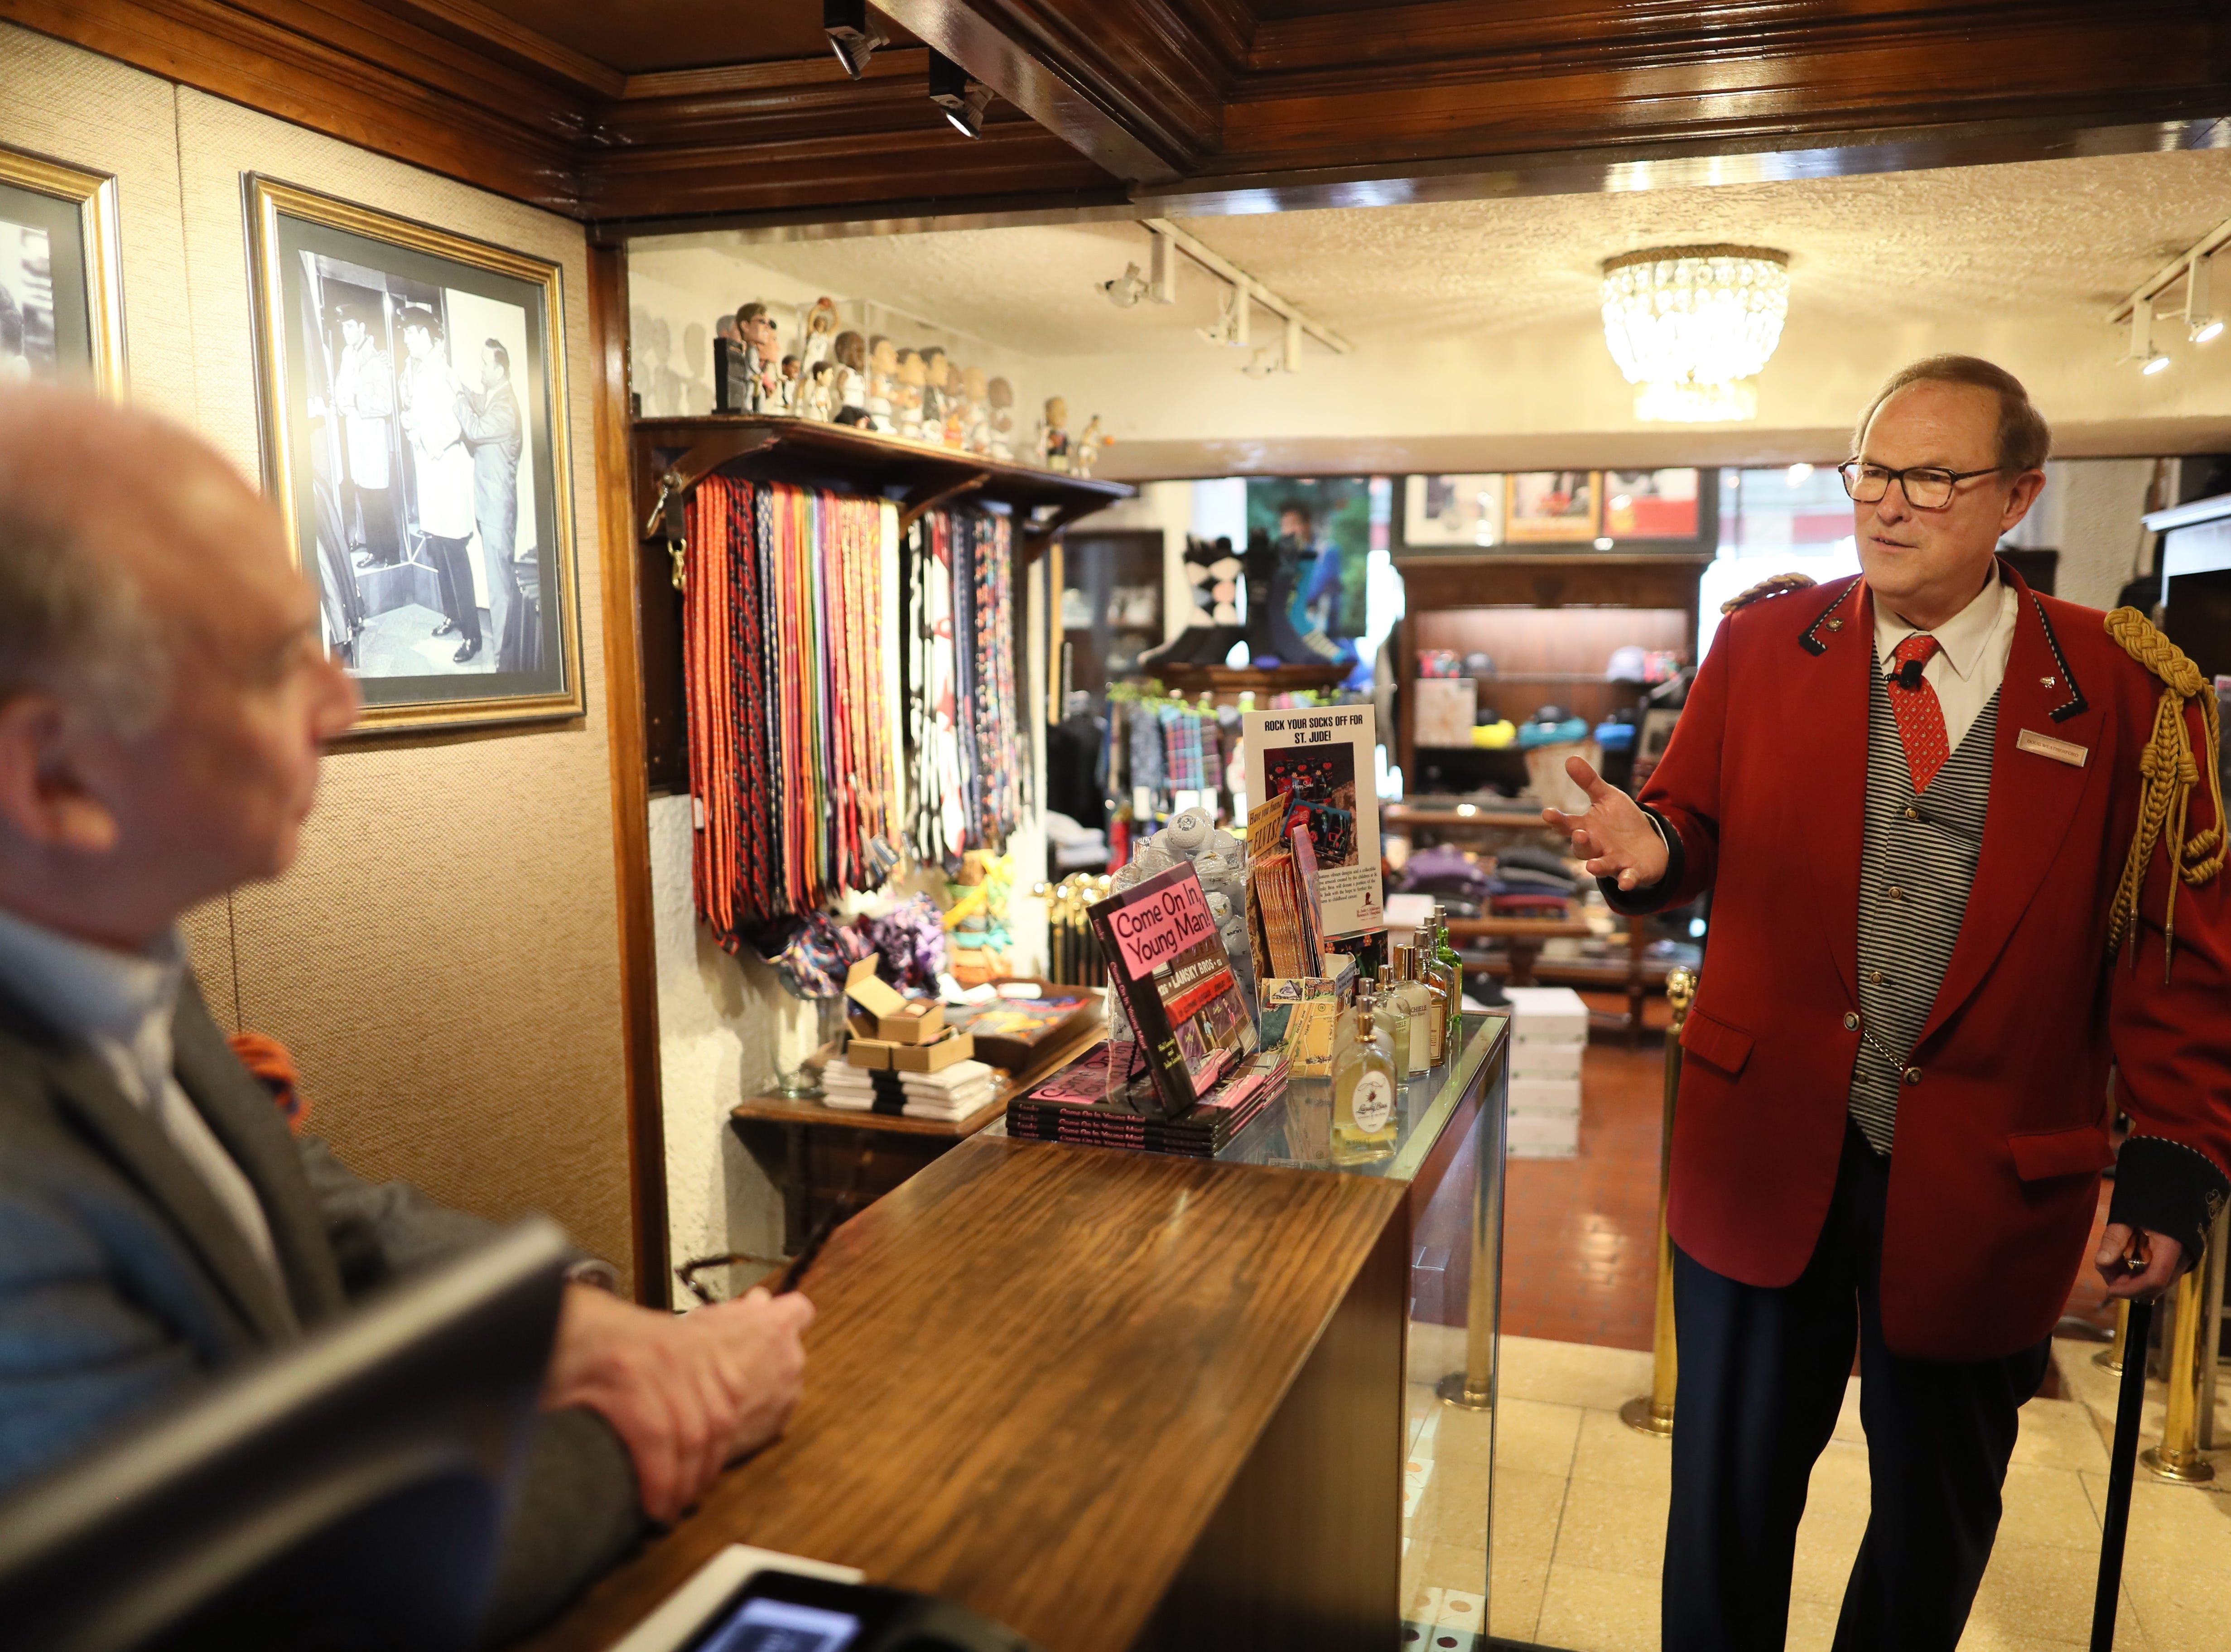 Doug Weatherford, Duckmaster at the Peabody Hotel gives a tour with details of the Lansky Brothers clothing shop inside the historic building in downtown Memphis on Thursday, Feb. 21, 2019.